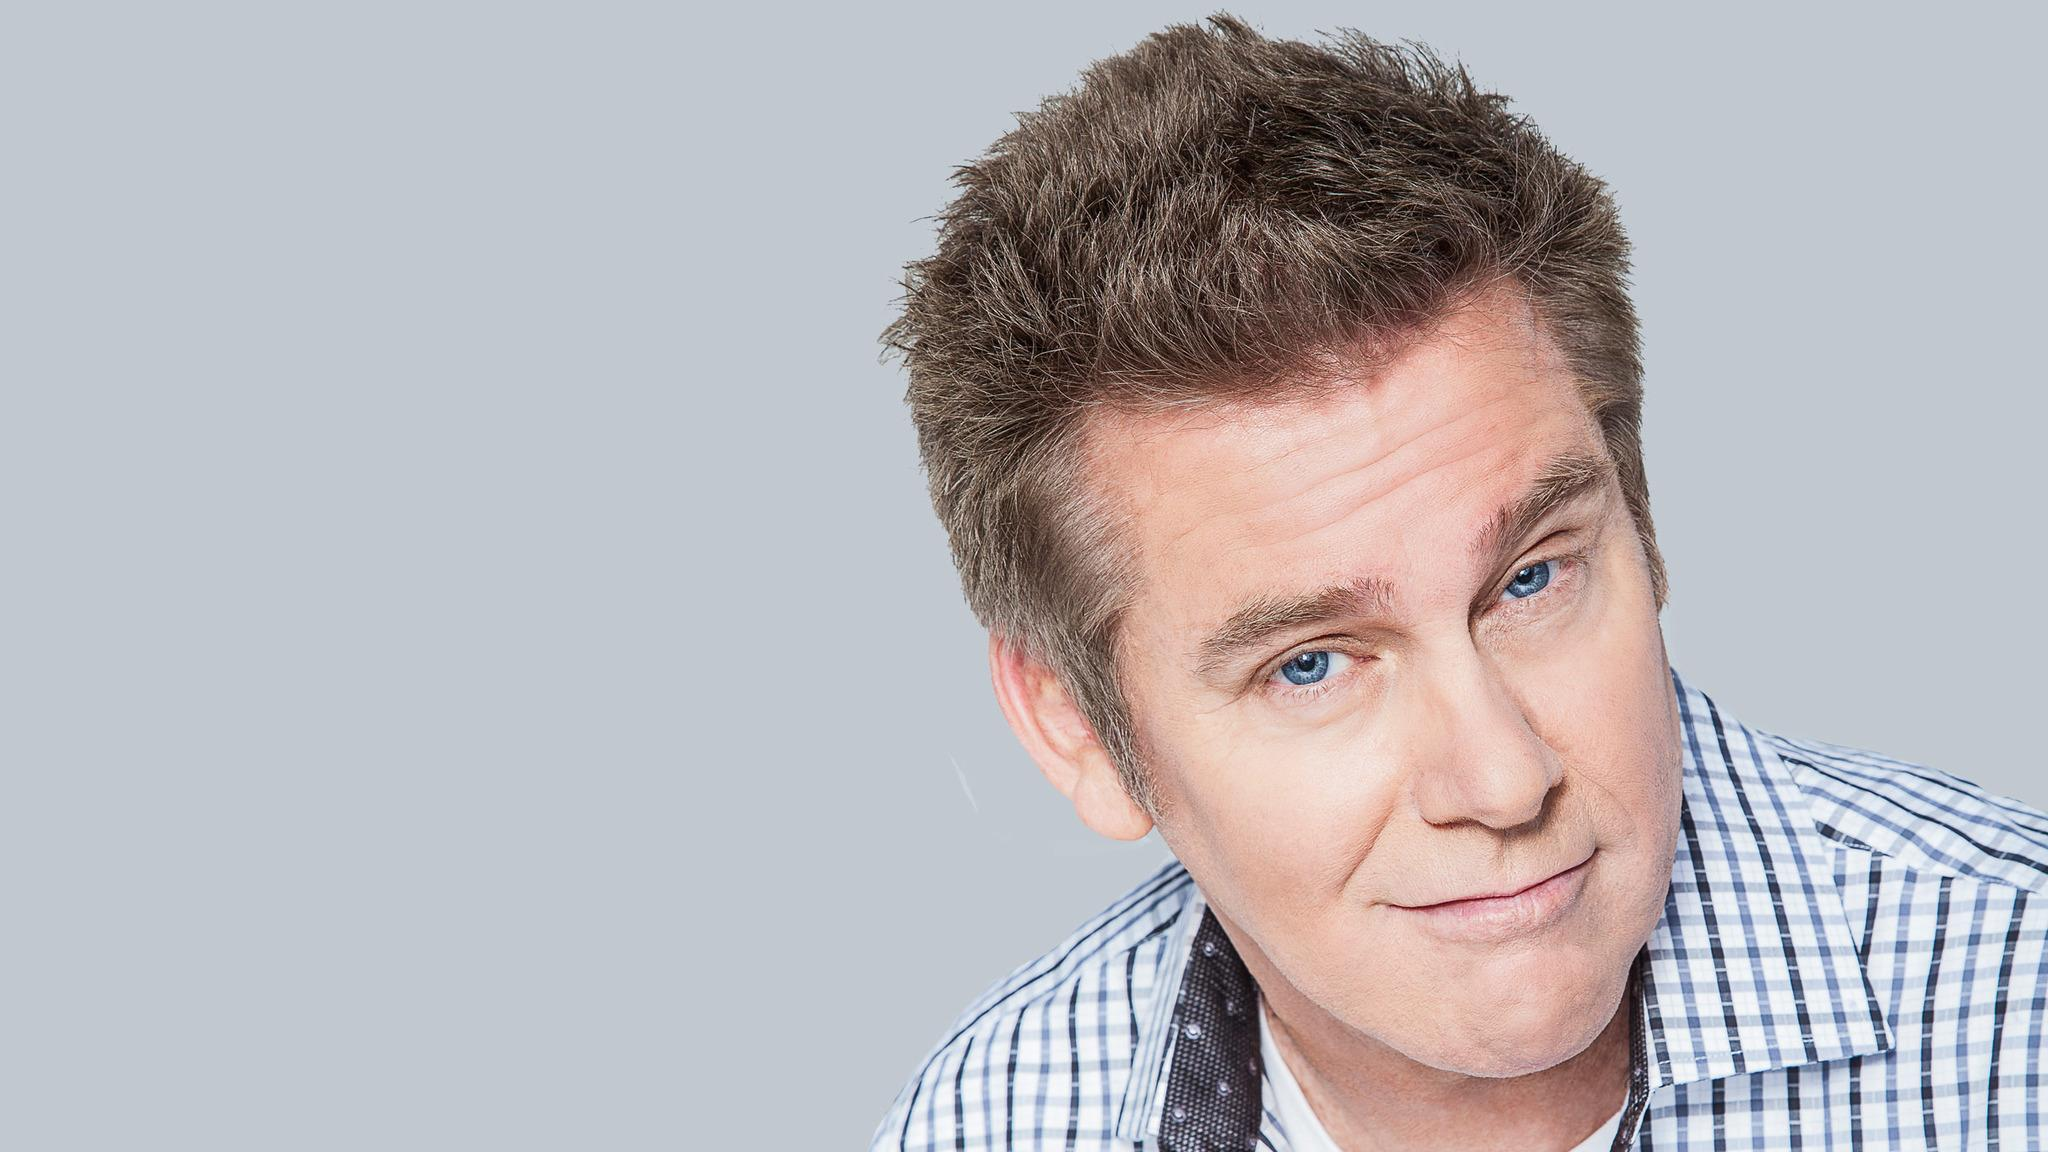 Brian Regan free pre-sale info for performance tickets in Houston, TX (Bayou Music Center)